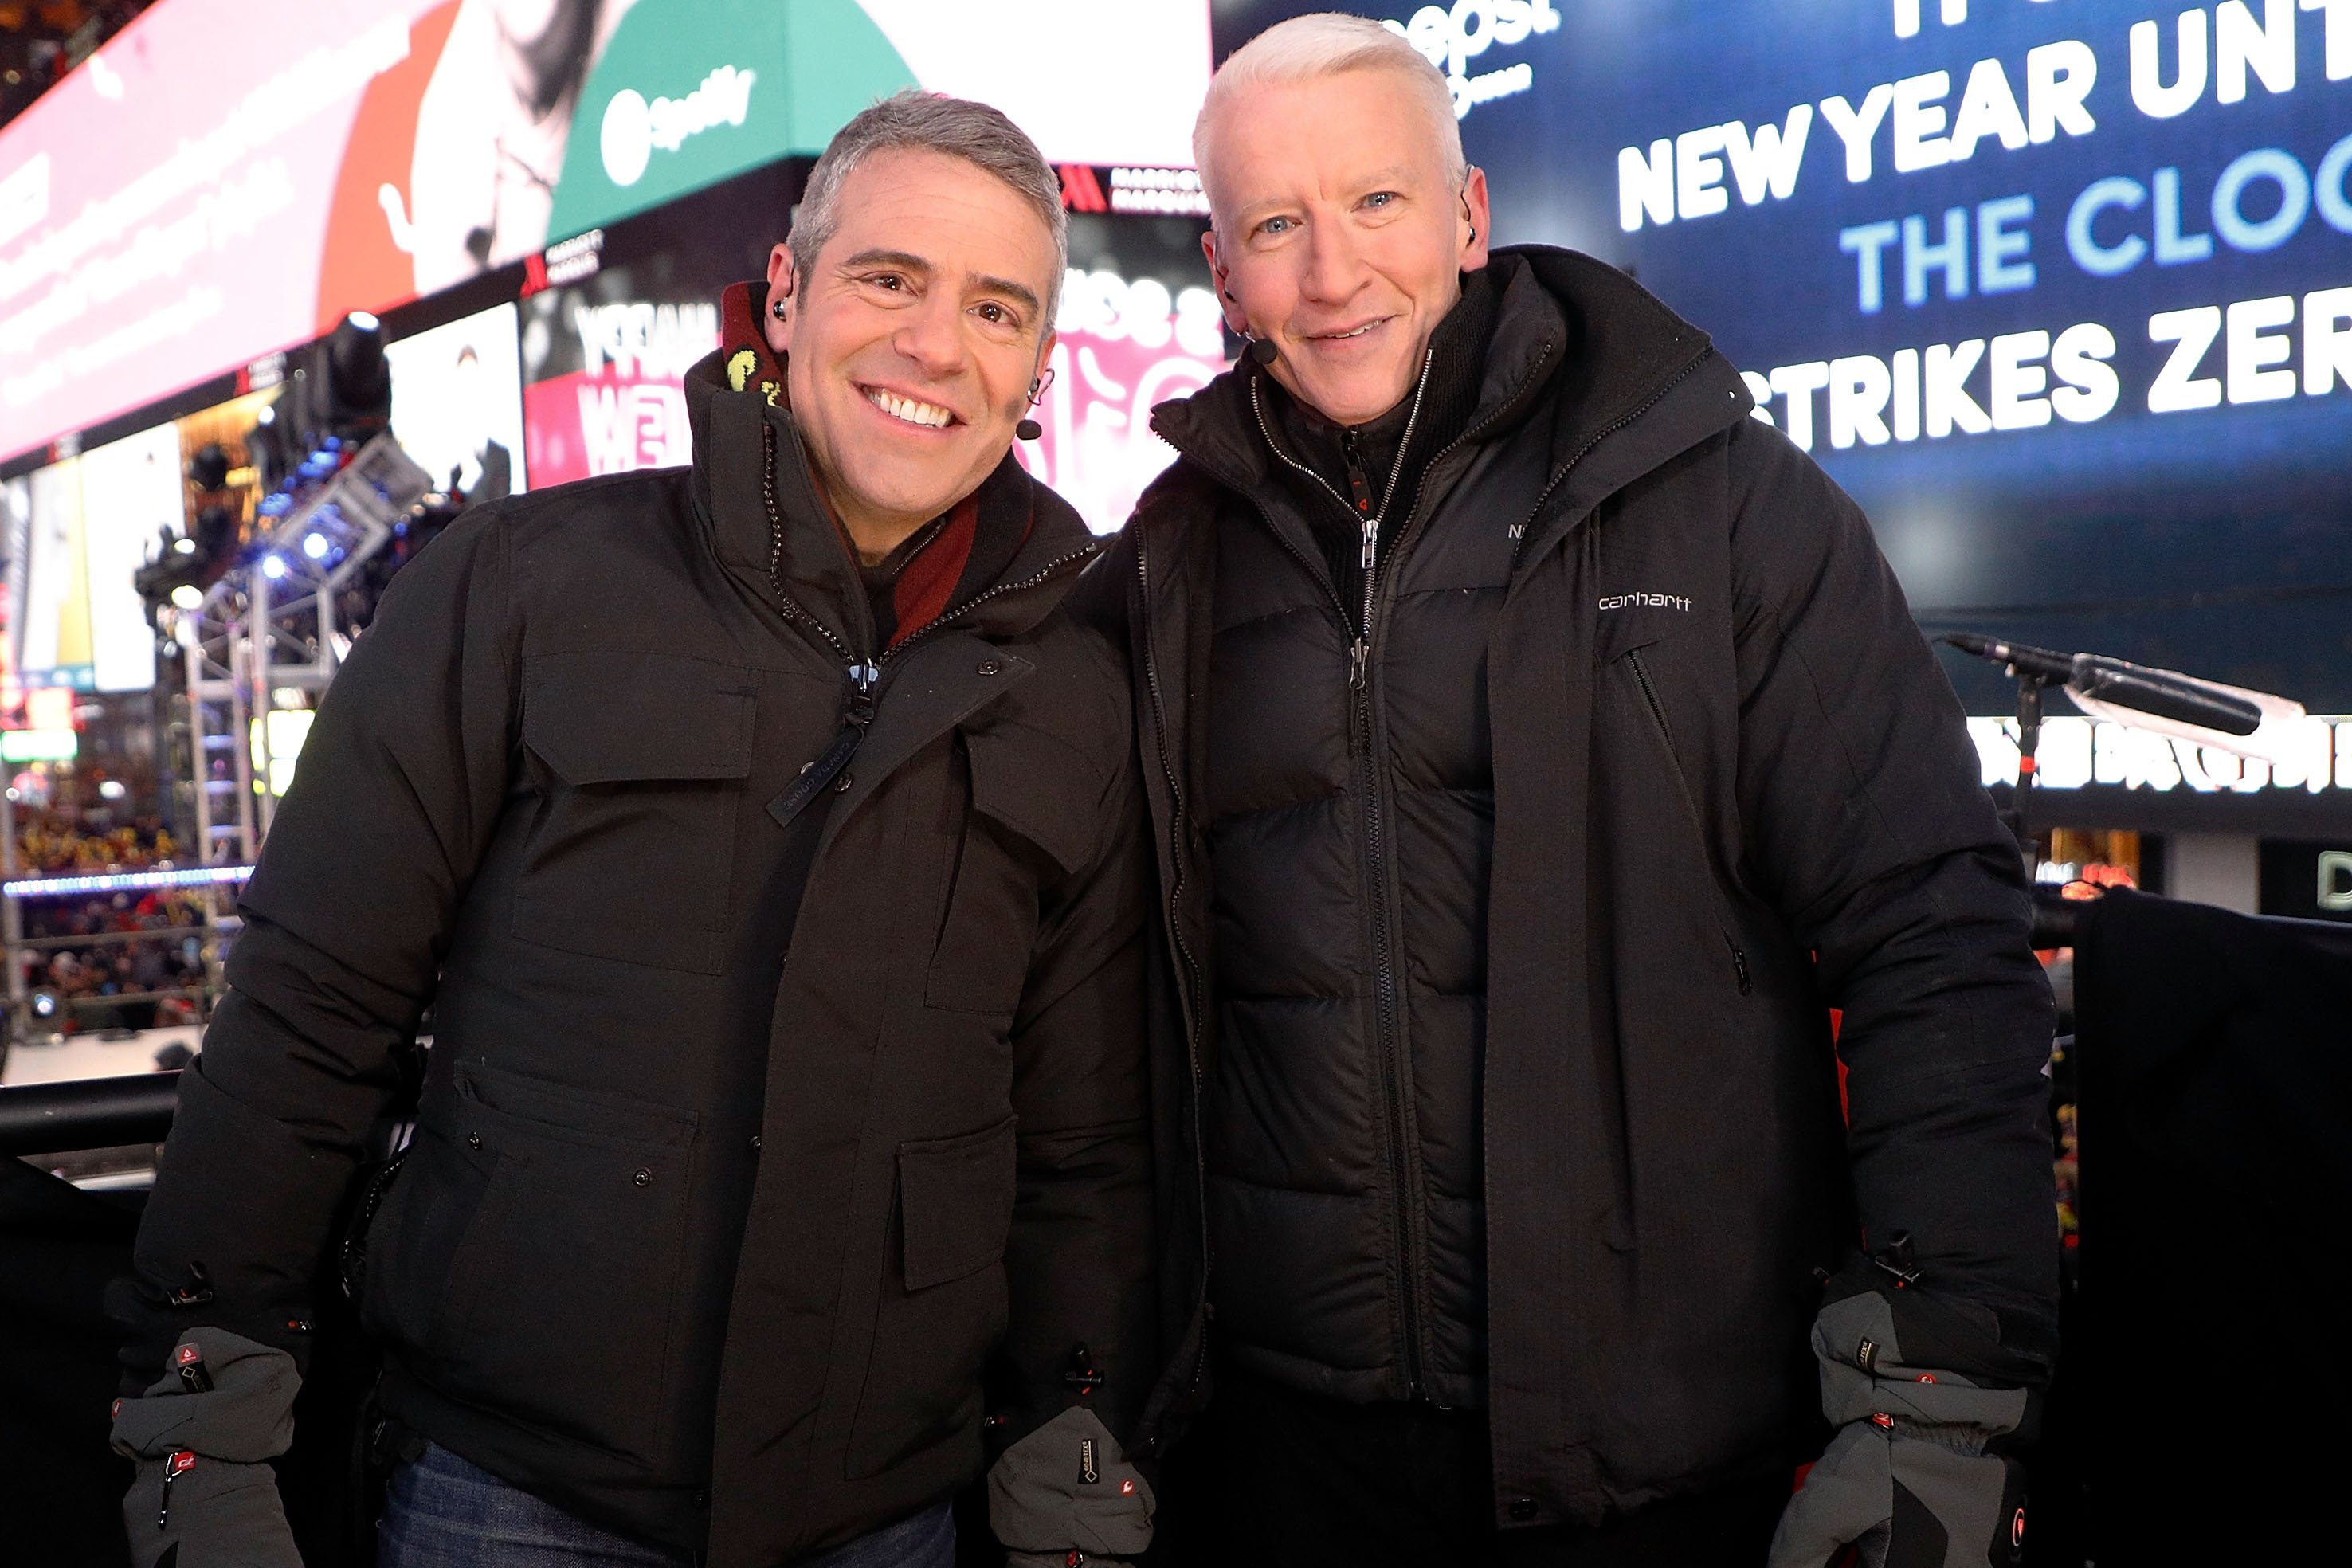 Anderson Cooper spent almost $3K to stay warm on New Year's Eve